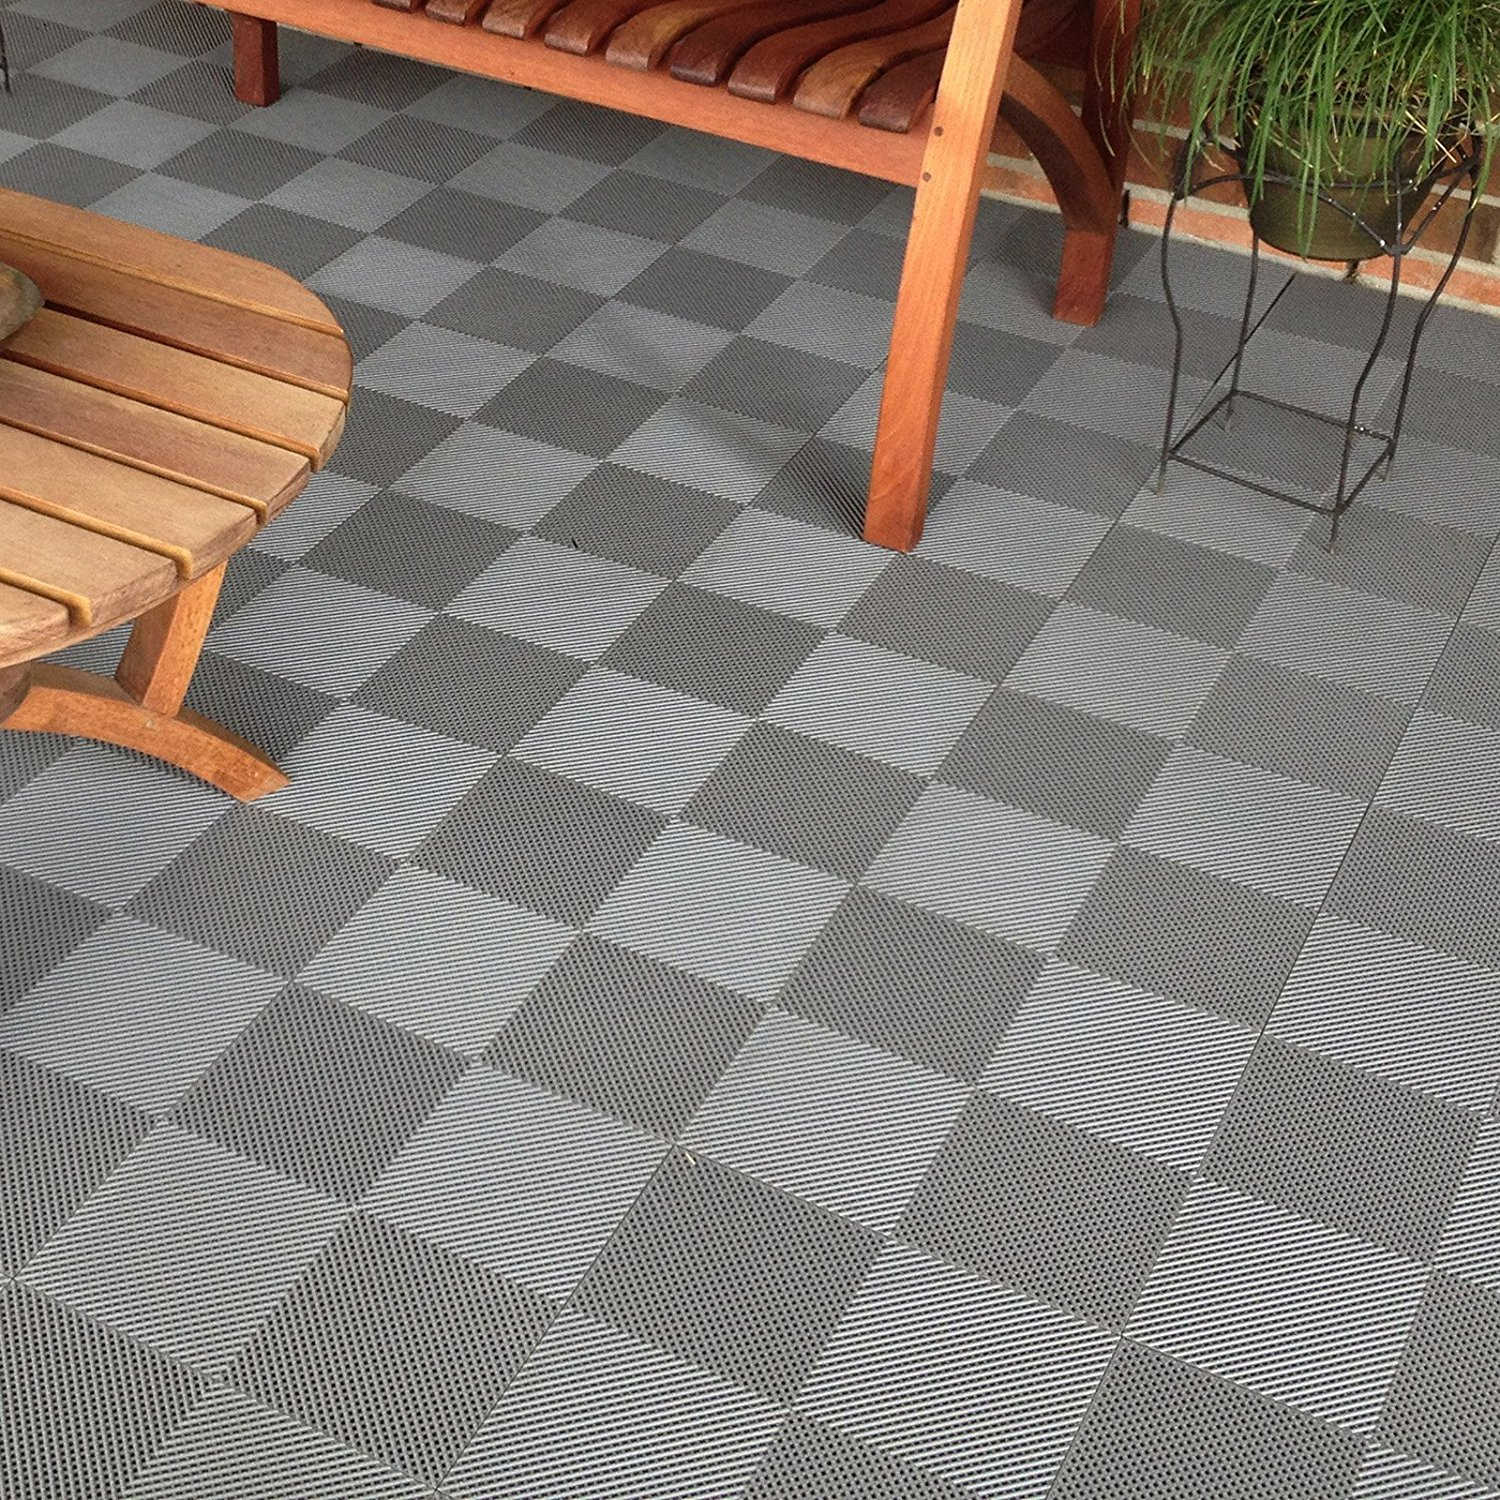 Outdoor tiles the tile home guide outdoor tiles dailygadgetfo Image collections